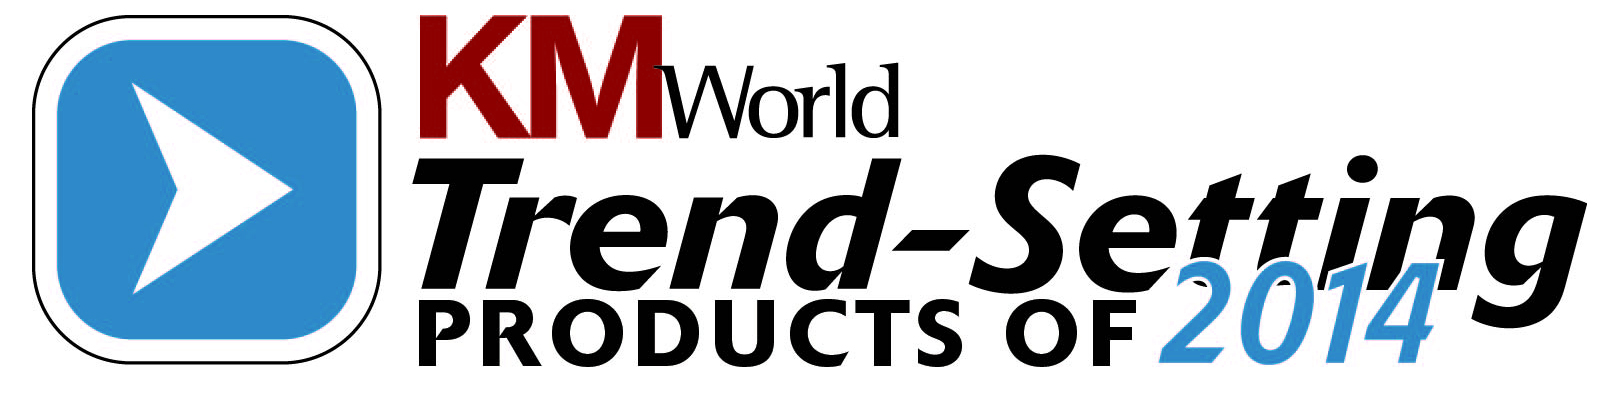 KMWorld Trend-Setting Product of 2014